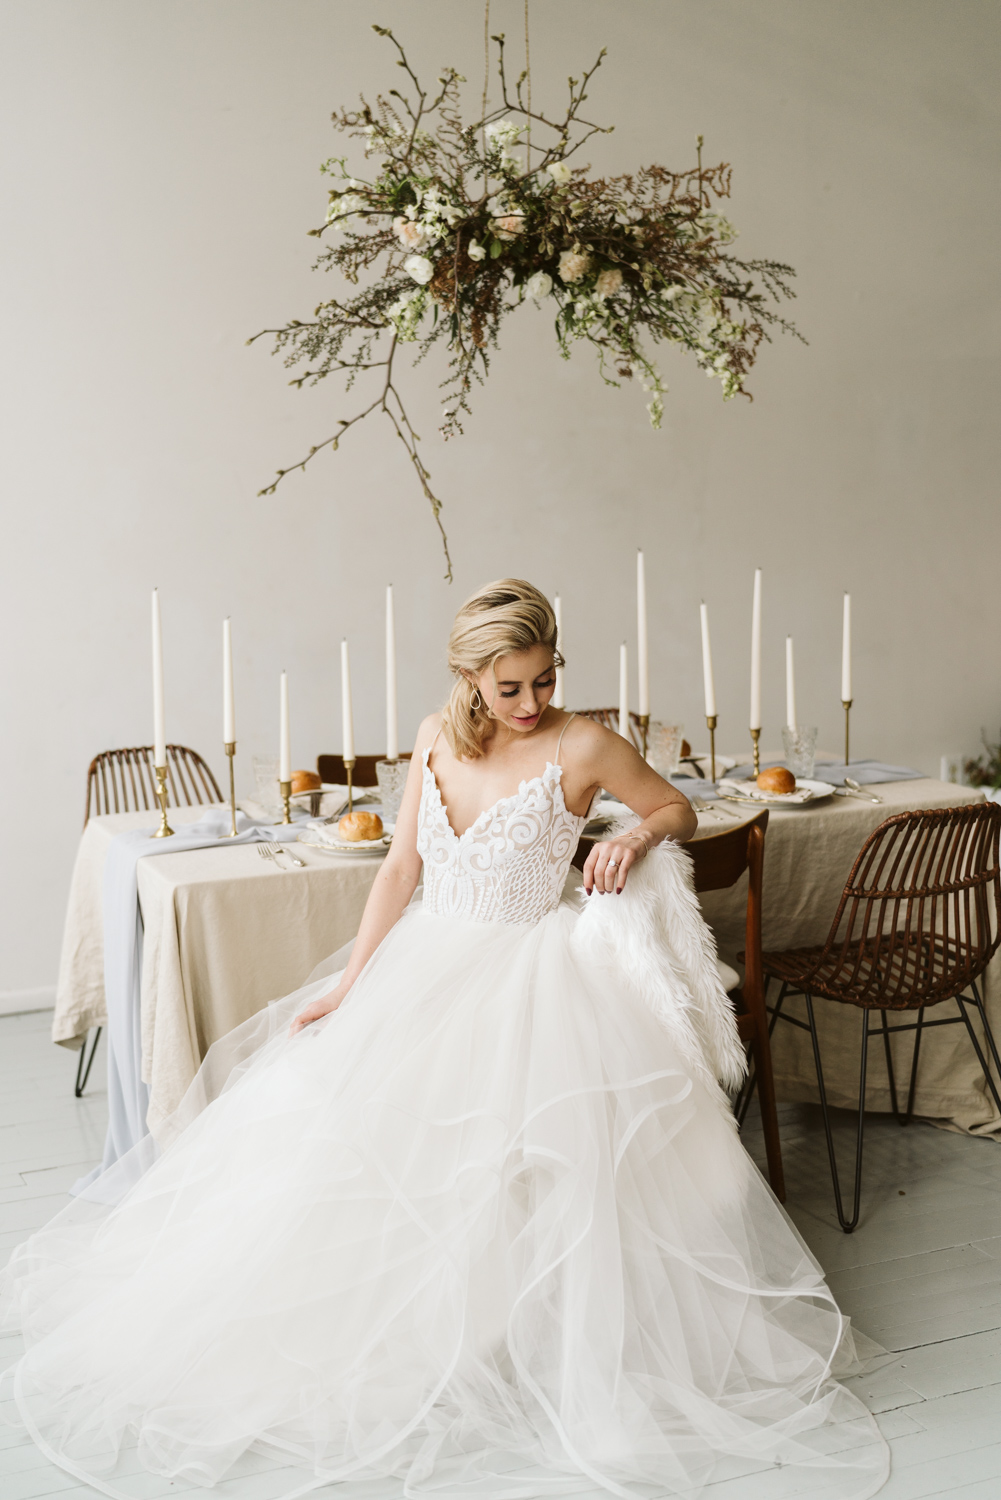 April Yentas Photography - January Styled Shoot-405.jpg